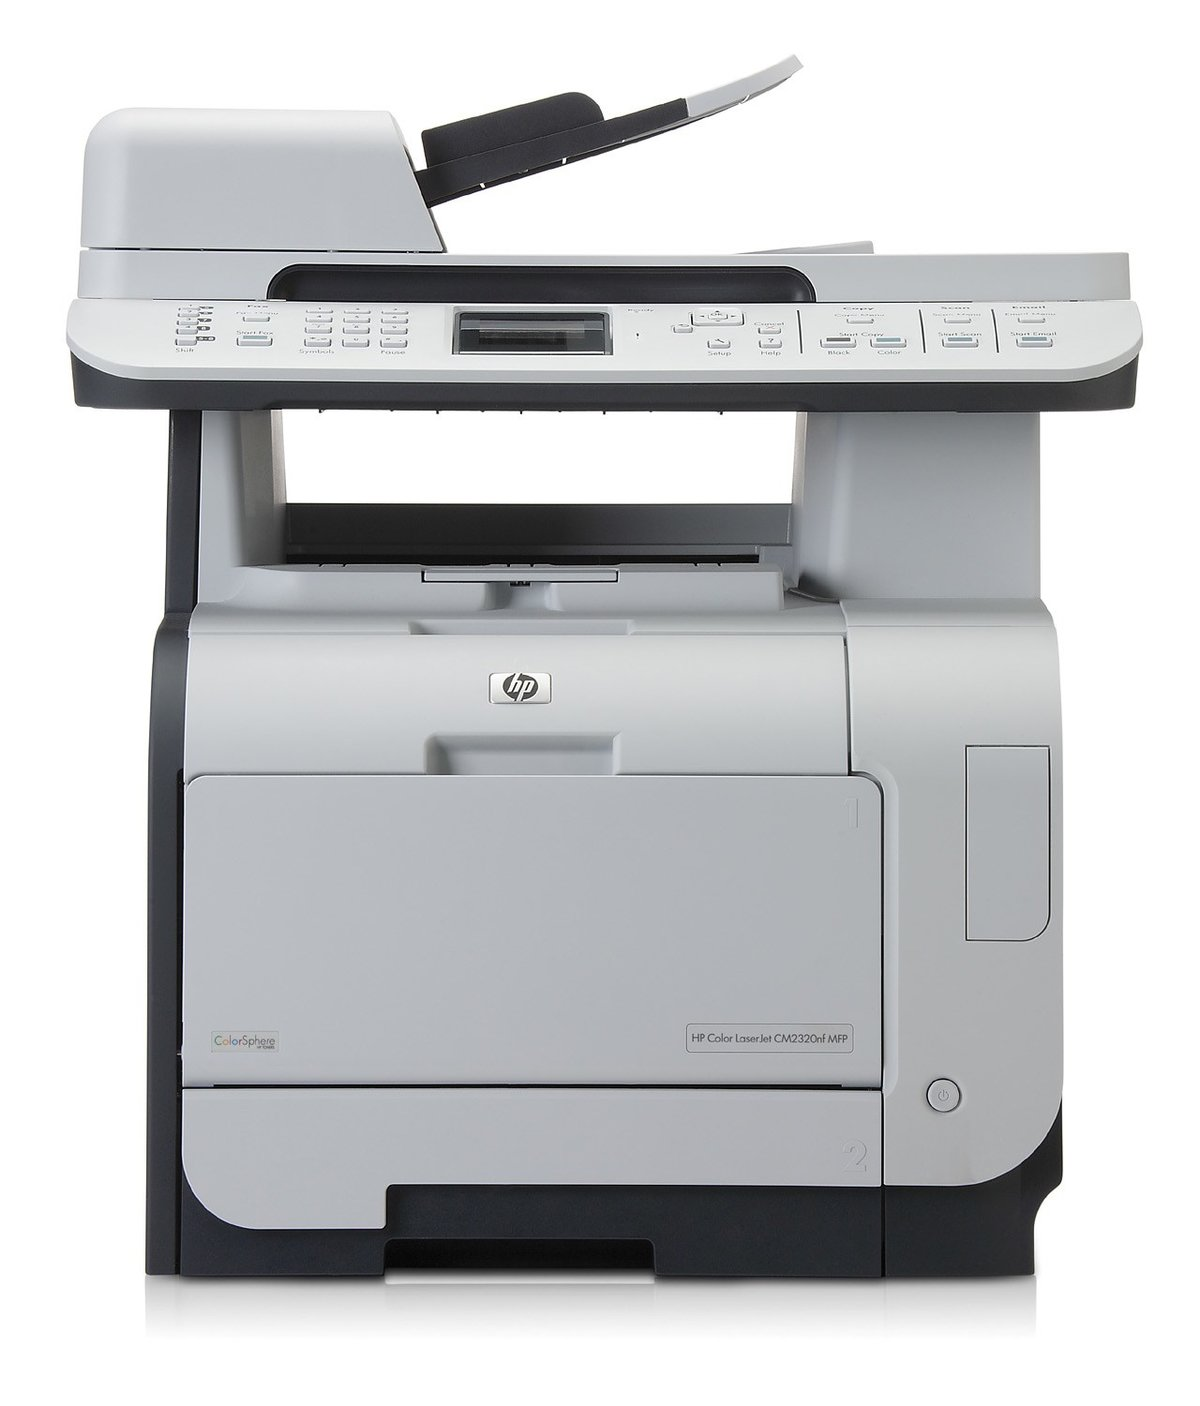 slide 1 of 5,show larger image, hp color laserjet cm2320nf multifunction  printer